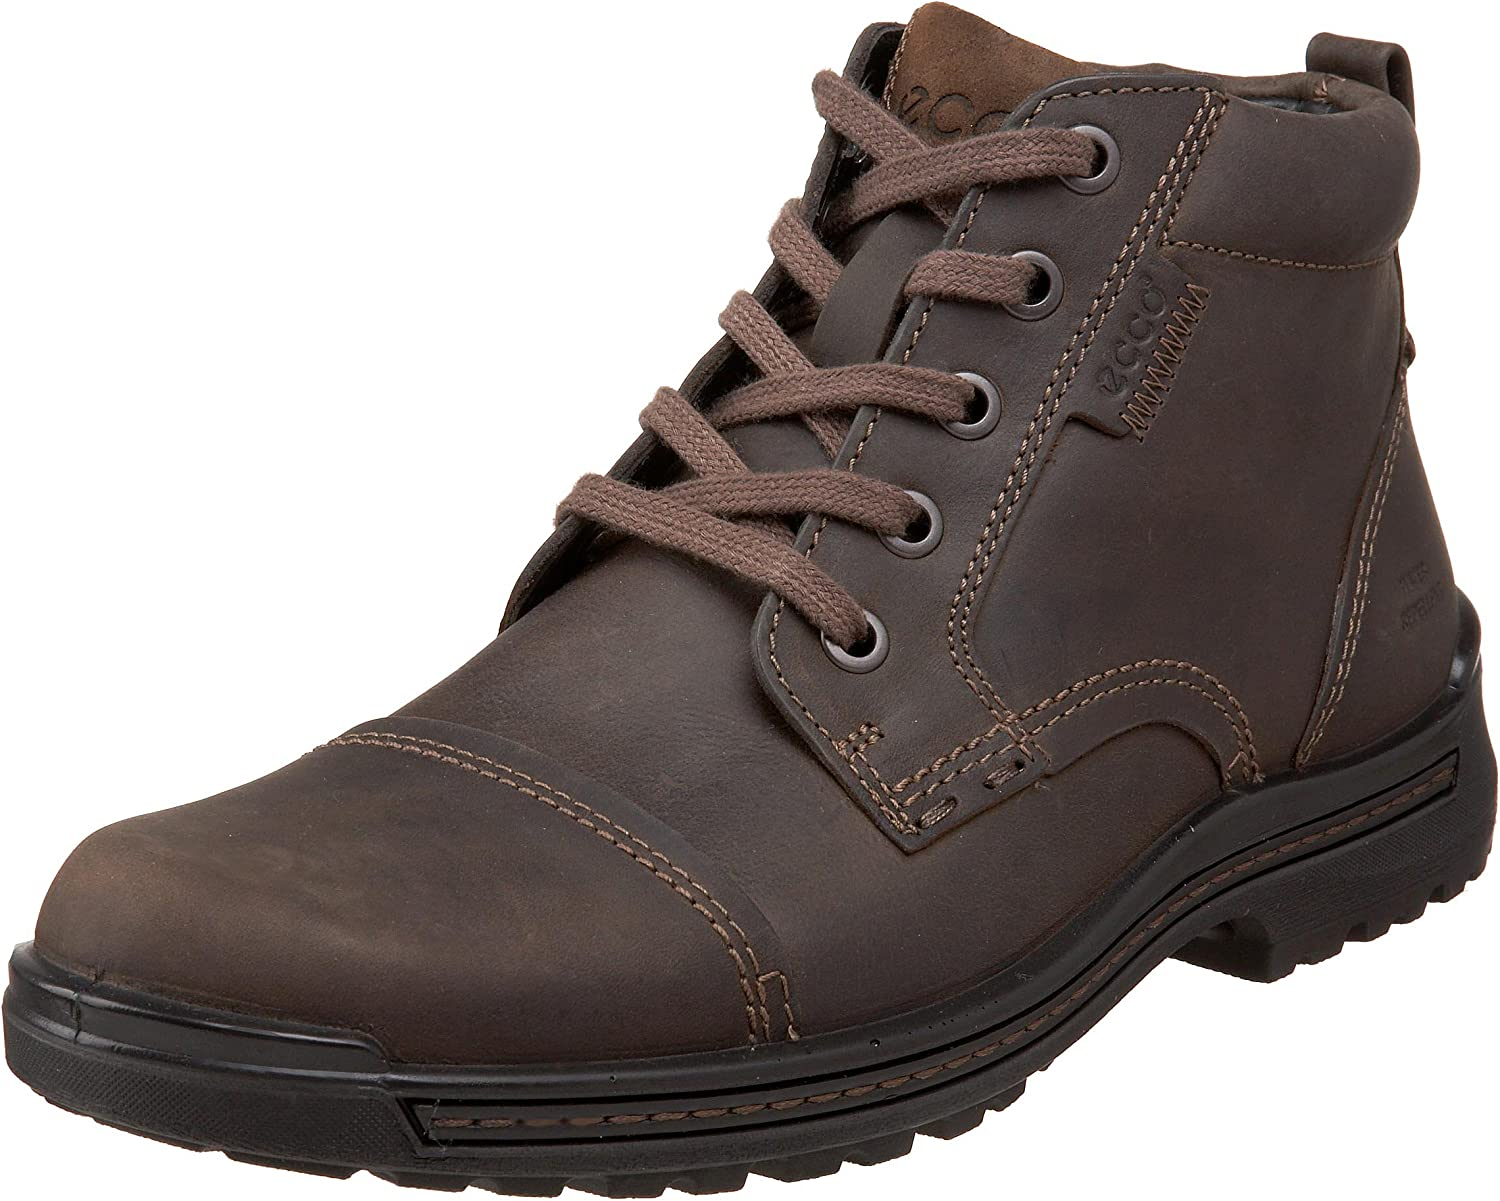 ecco work boots